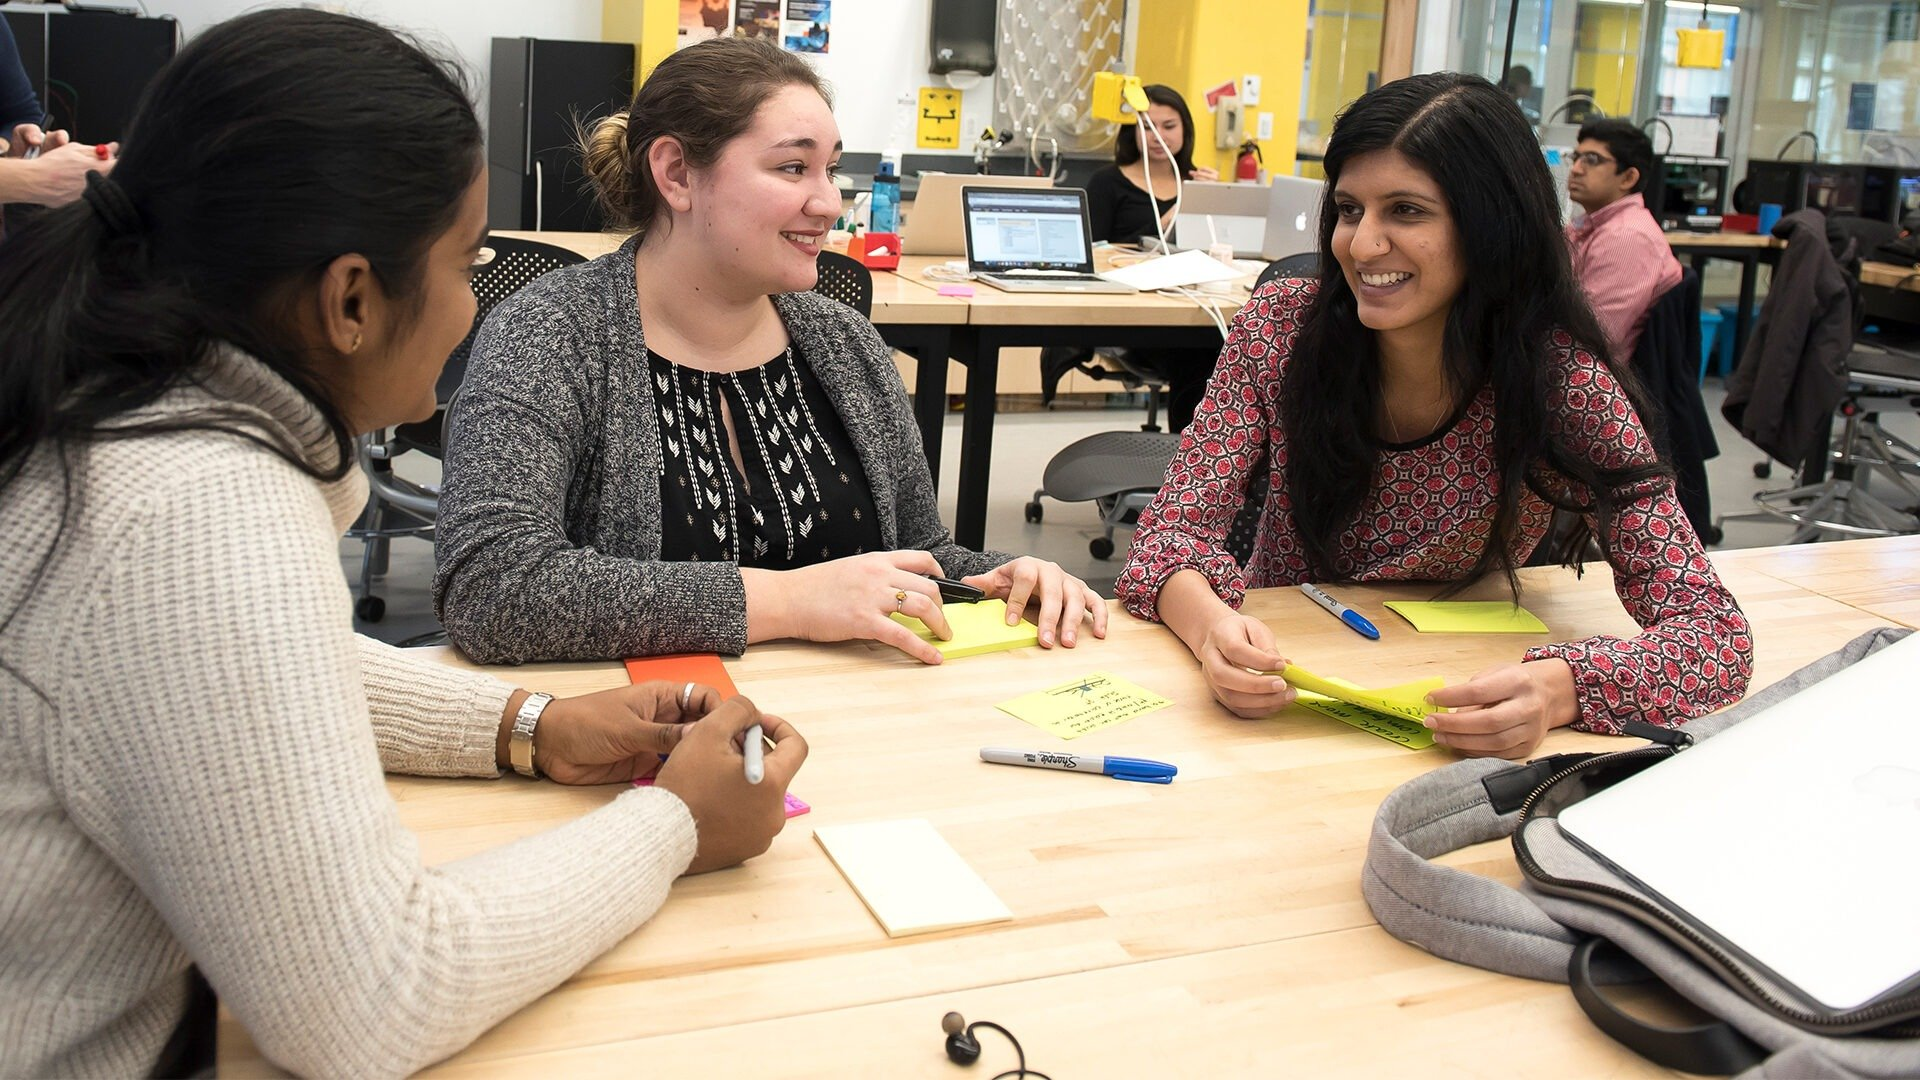 Three female students sit at a table in the design studio and discuss something during class.